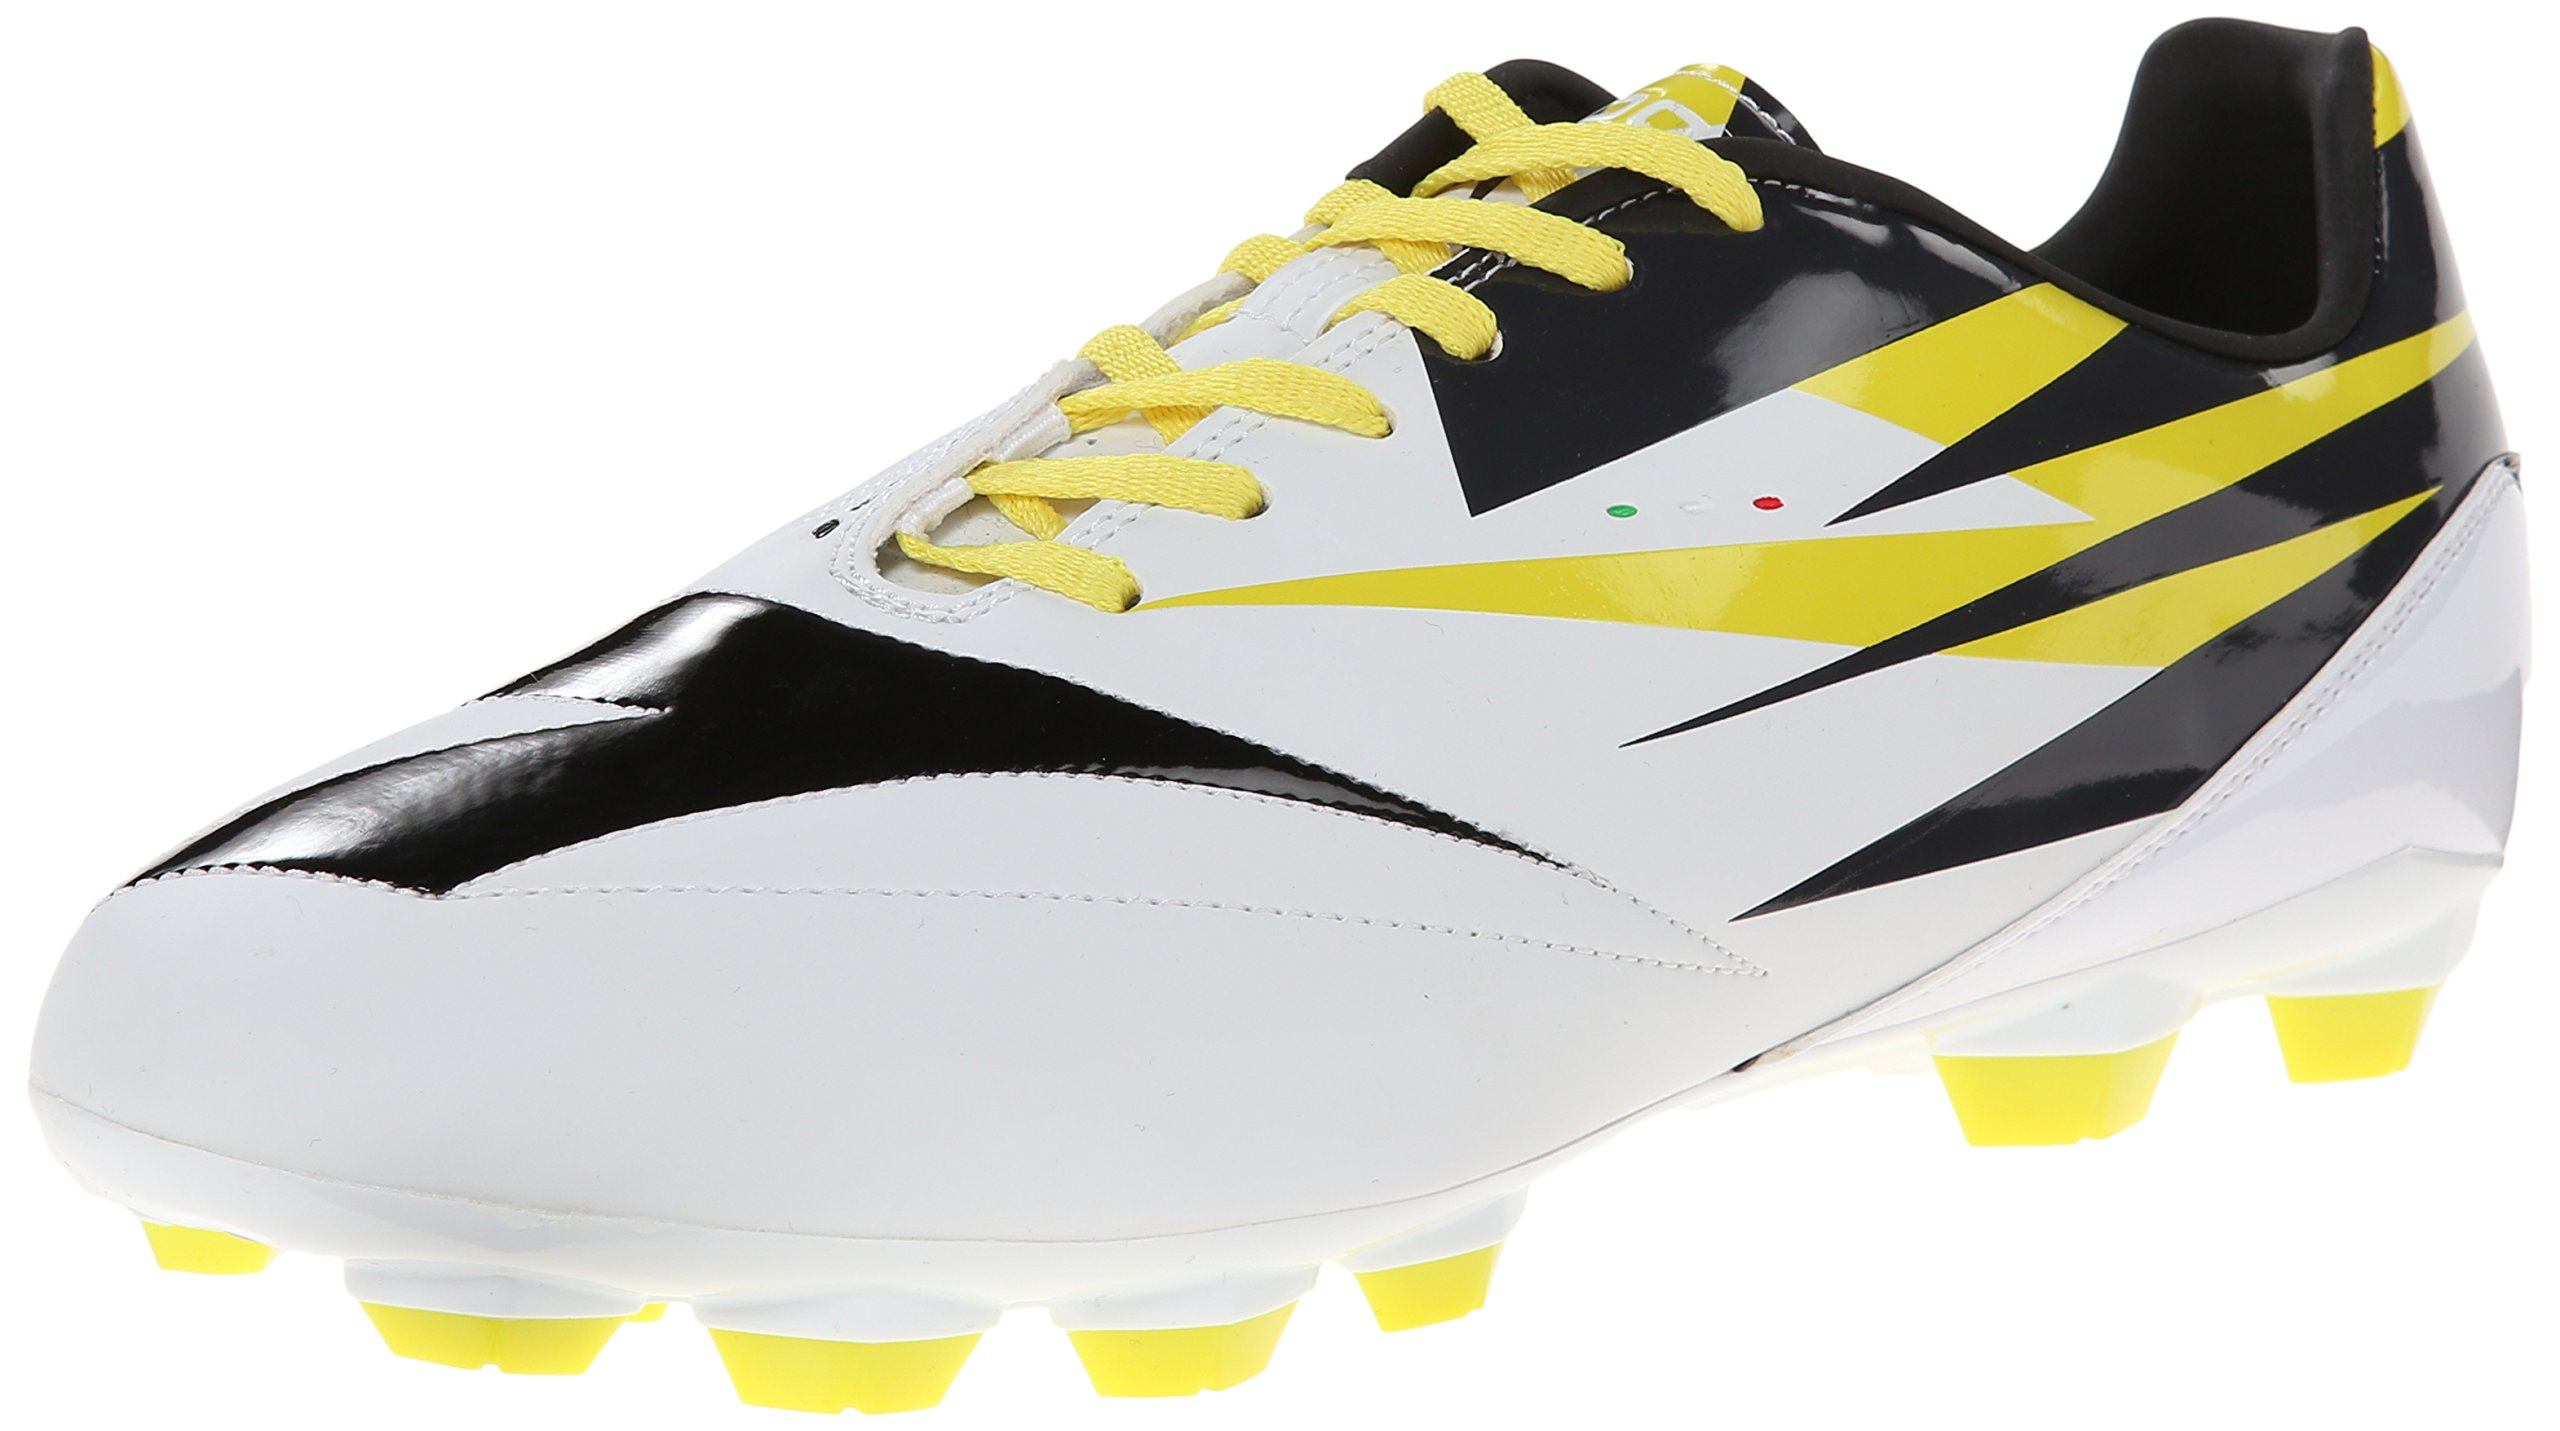 Diadora DD-NA 2 R LPU Soccer Cleat, White/Black/Fluorescent Yellow, 10.5 M US